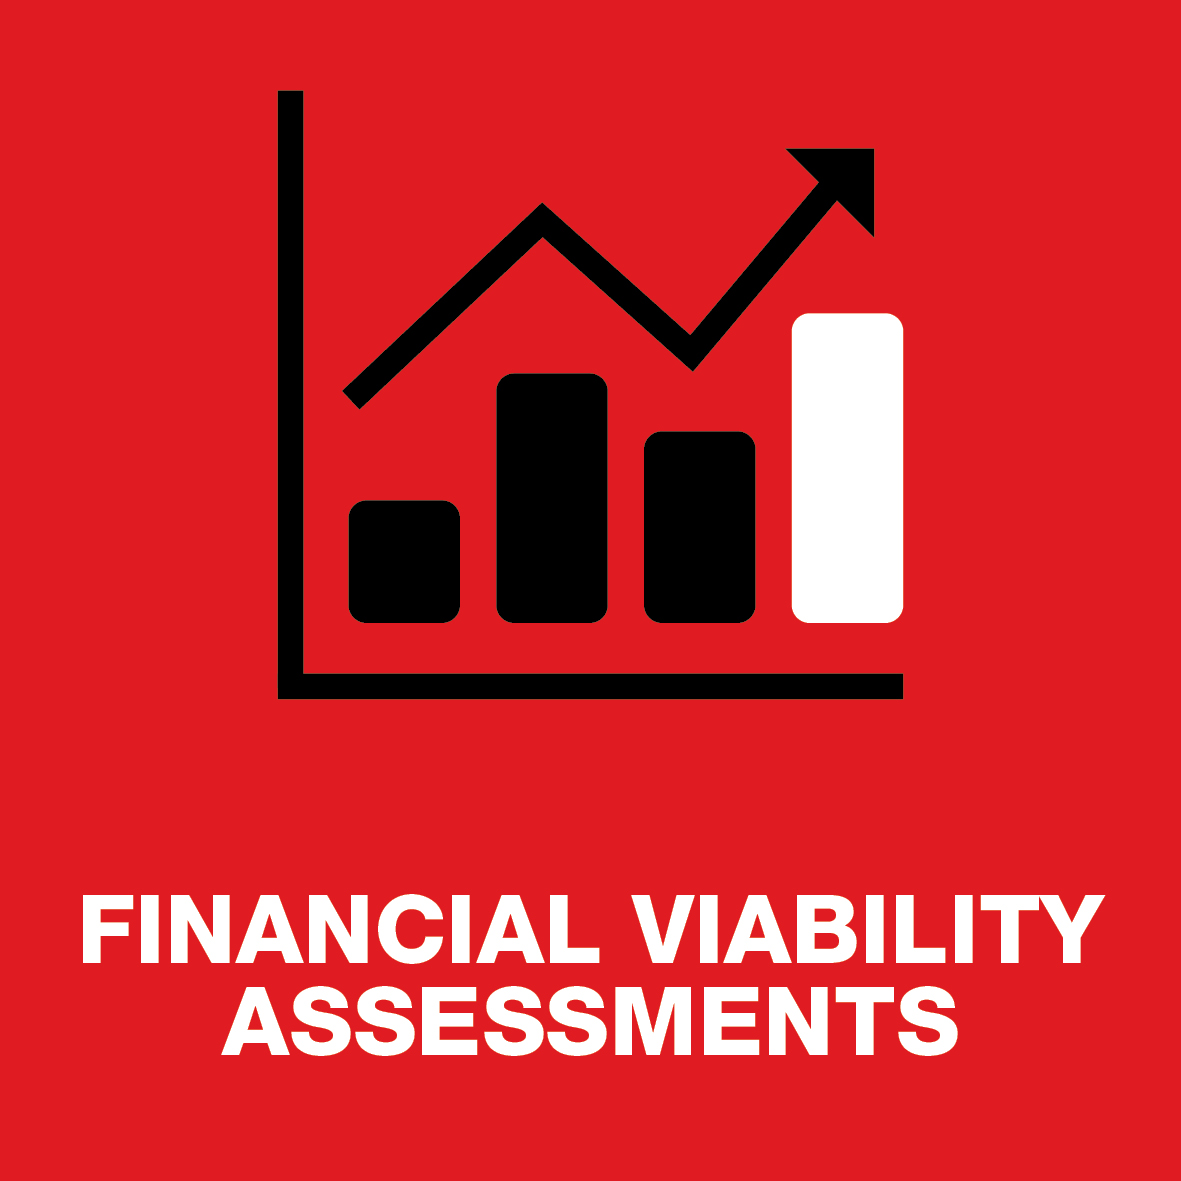 Financial Viability Assessments